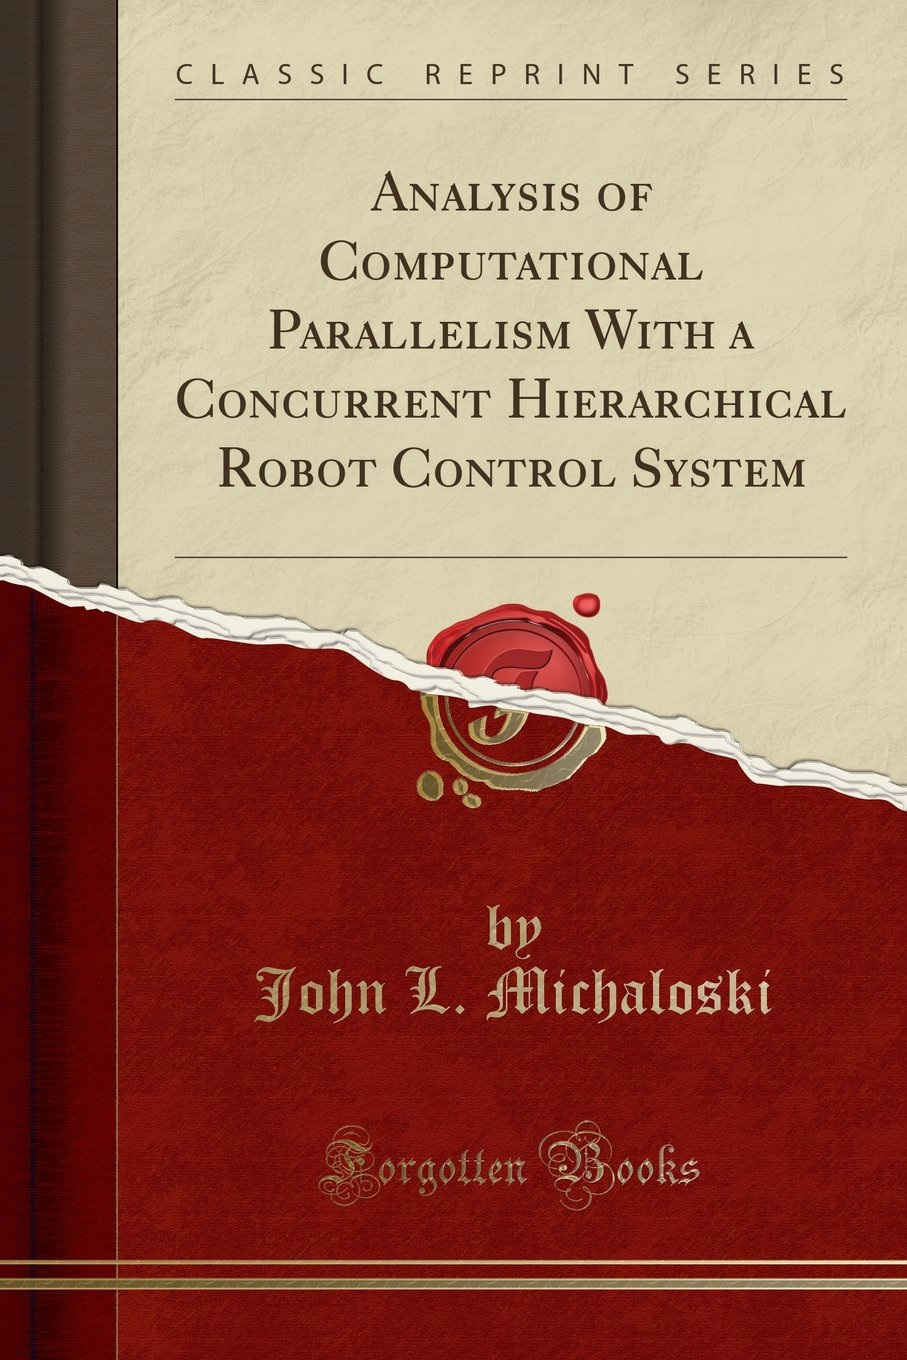 Analysis of Computational Parallelism with a Concurrent Hierarchical Robot Control System (Classic Reprint) PDF